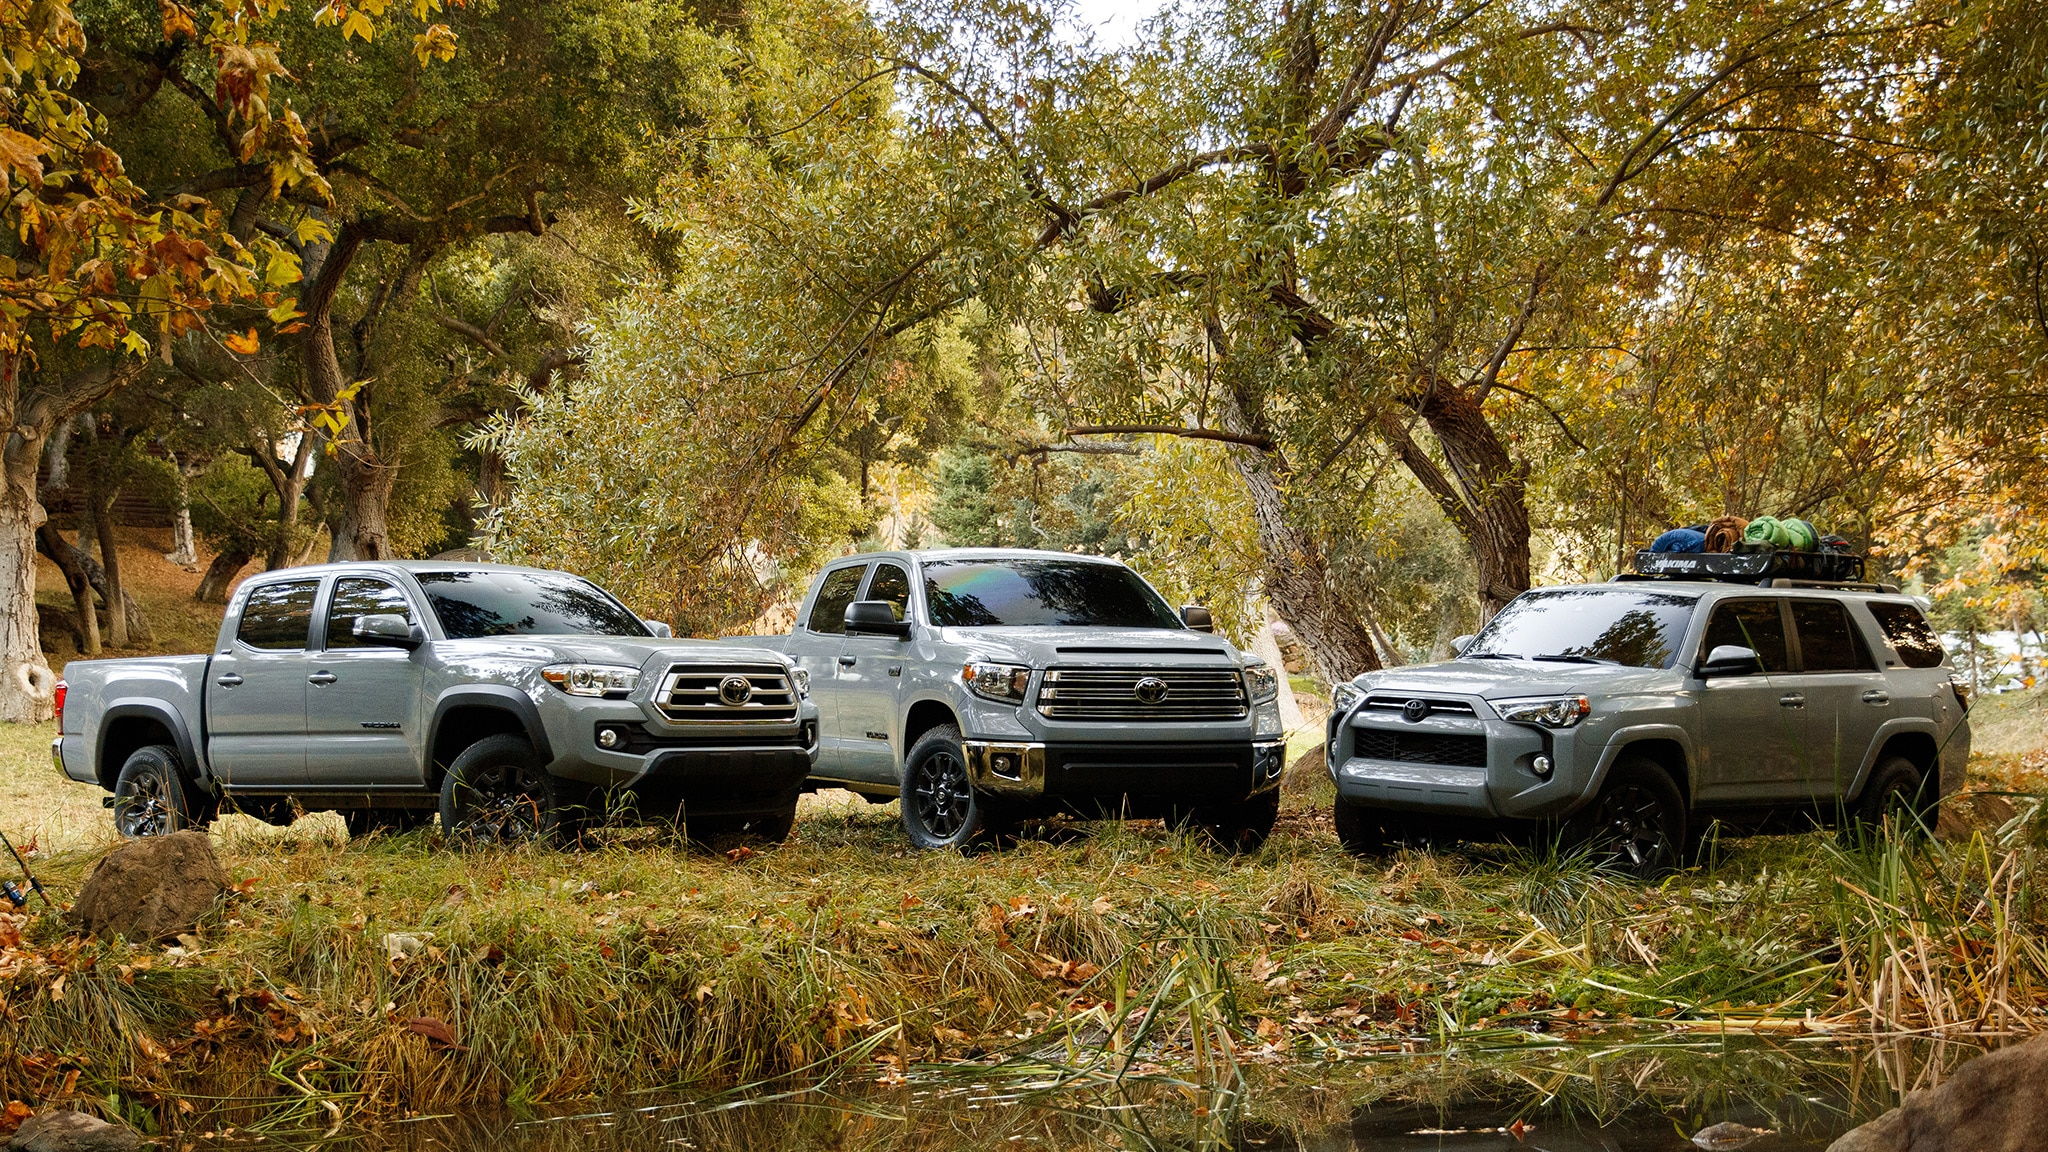 2021 Toyota 4Runner, Tacoma, And Tundra Trail Editions at 2020 Chicago Auto Show